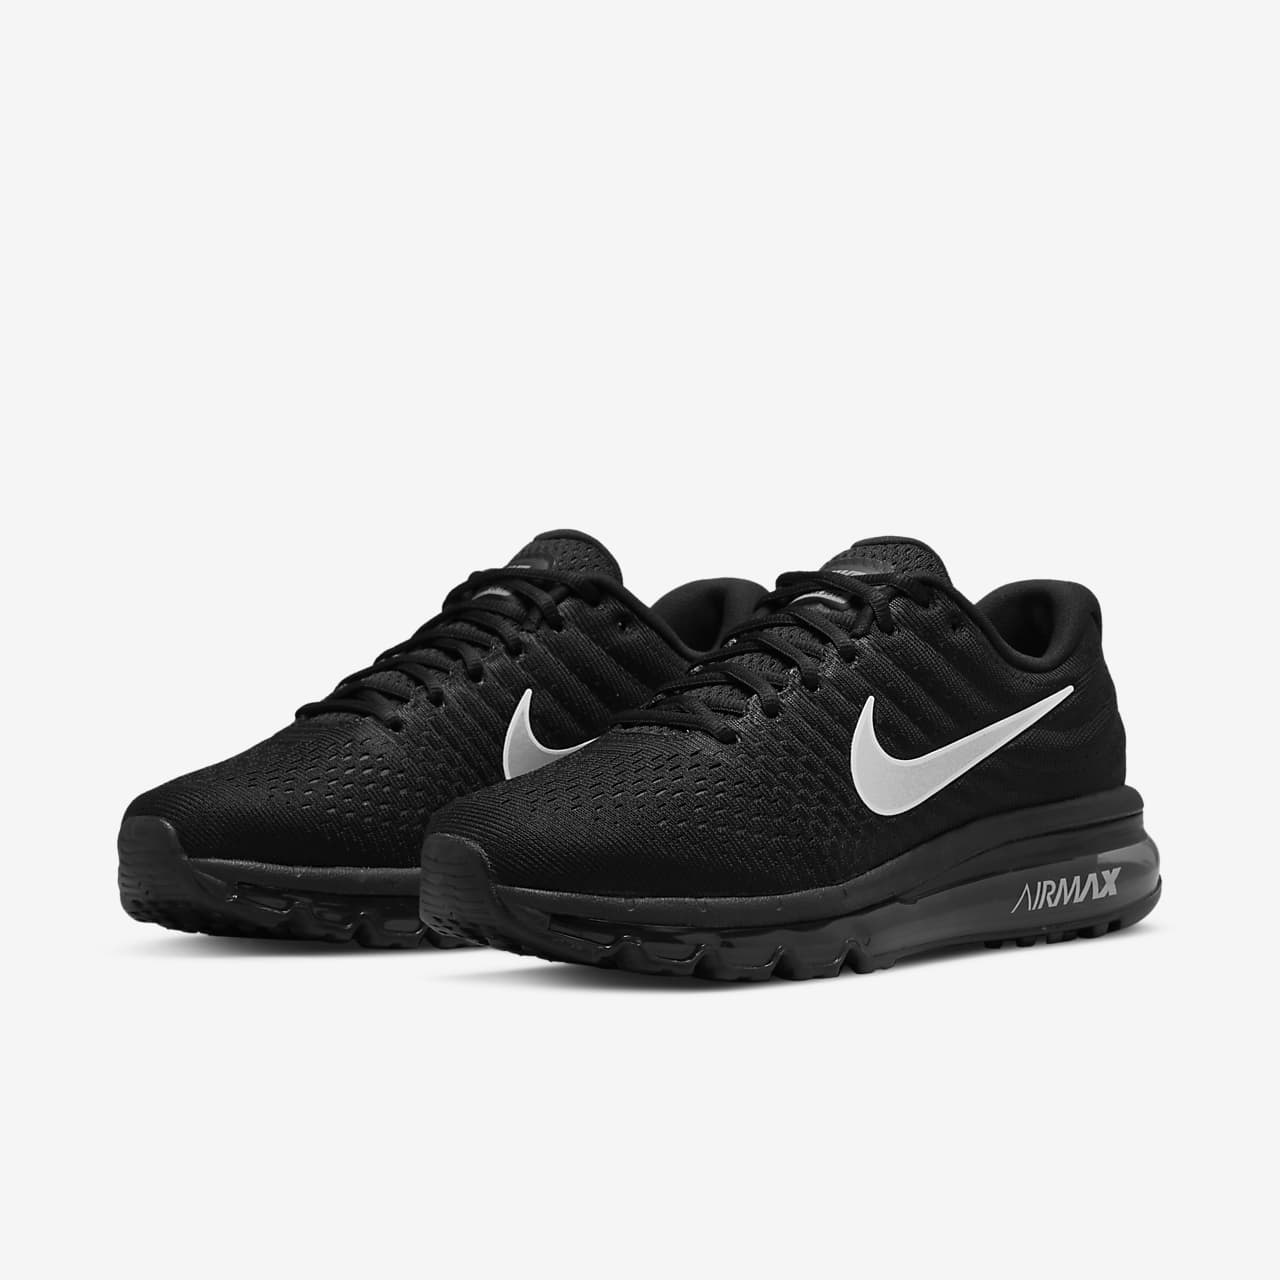 low priced 7536a a7289 Nike Air Max 2017 Women's Shoe. Nike.com GB